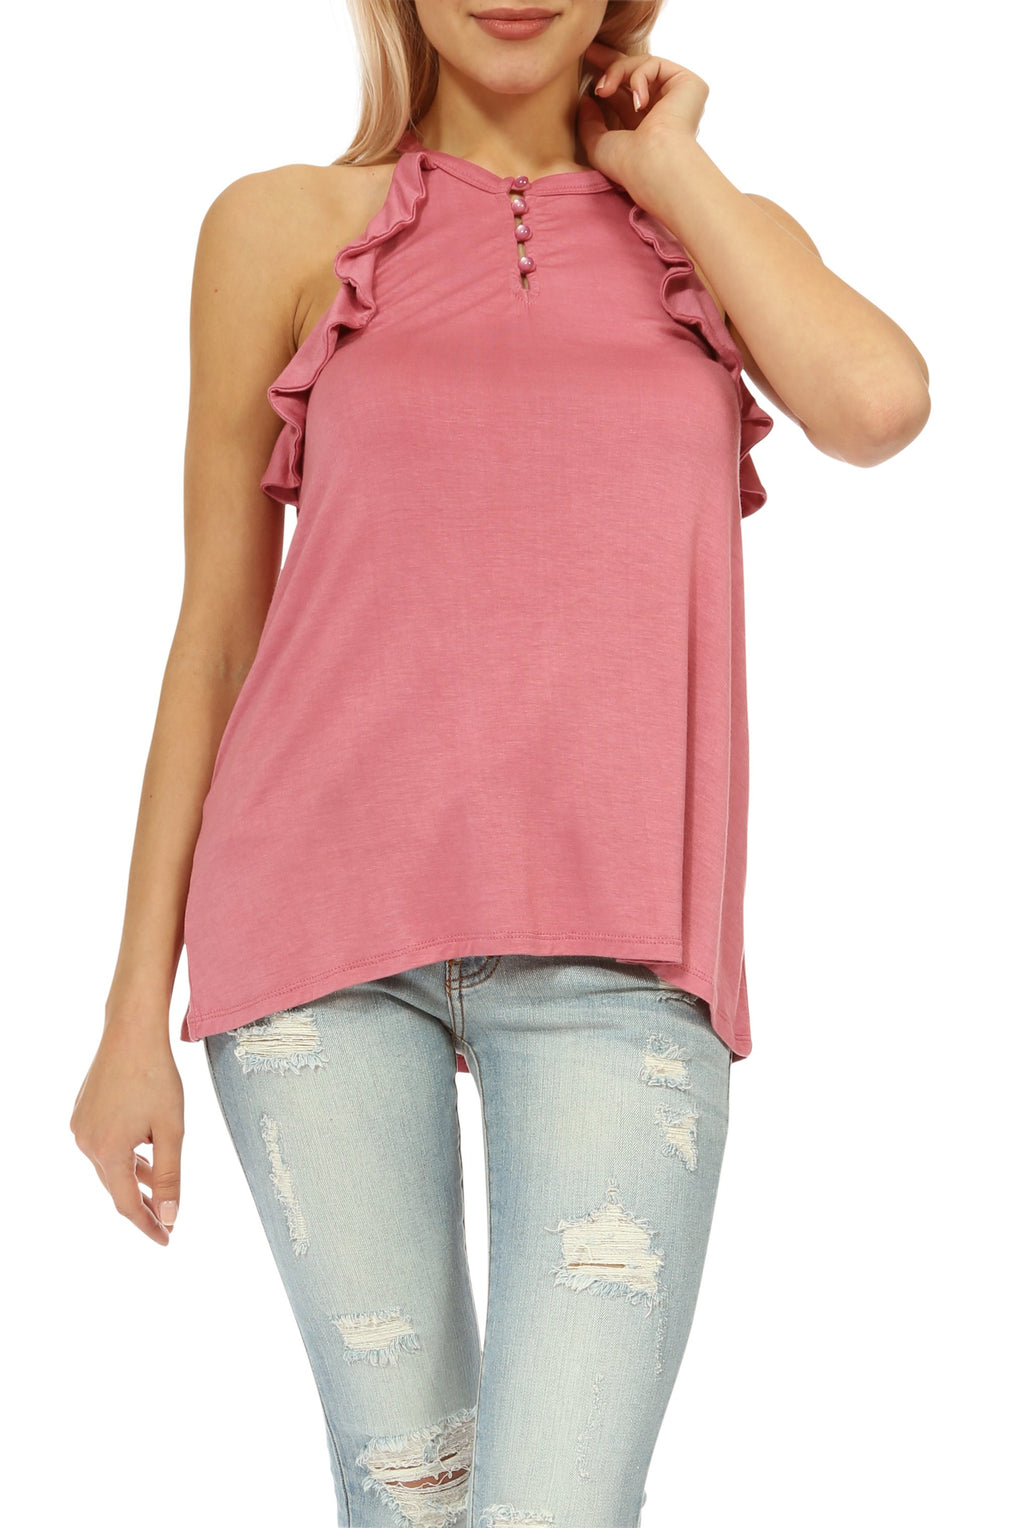 Teeze Me | Halter Armhole Ruffled Top  | Dusty Rose